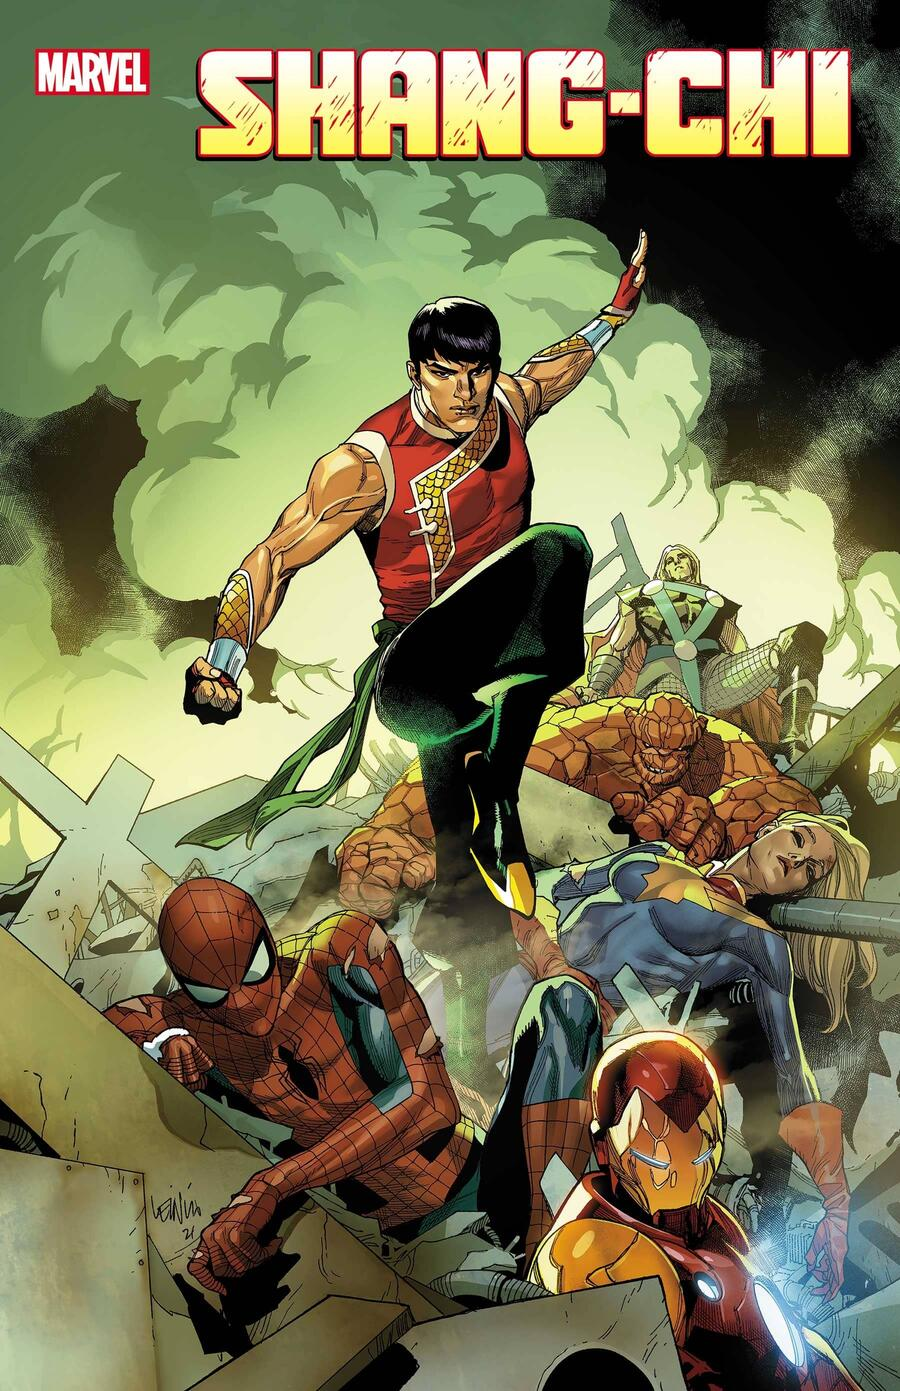 Shang-Chi vs the Marvel Universe